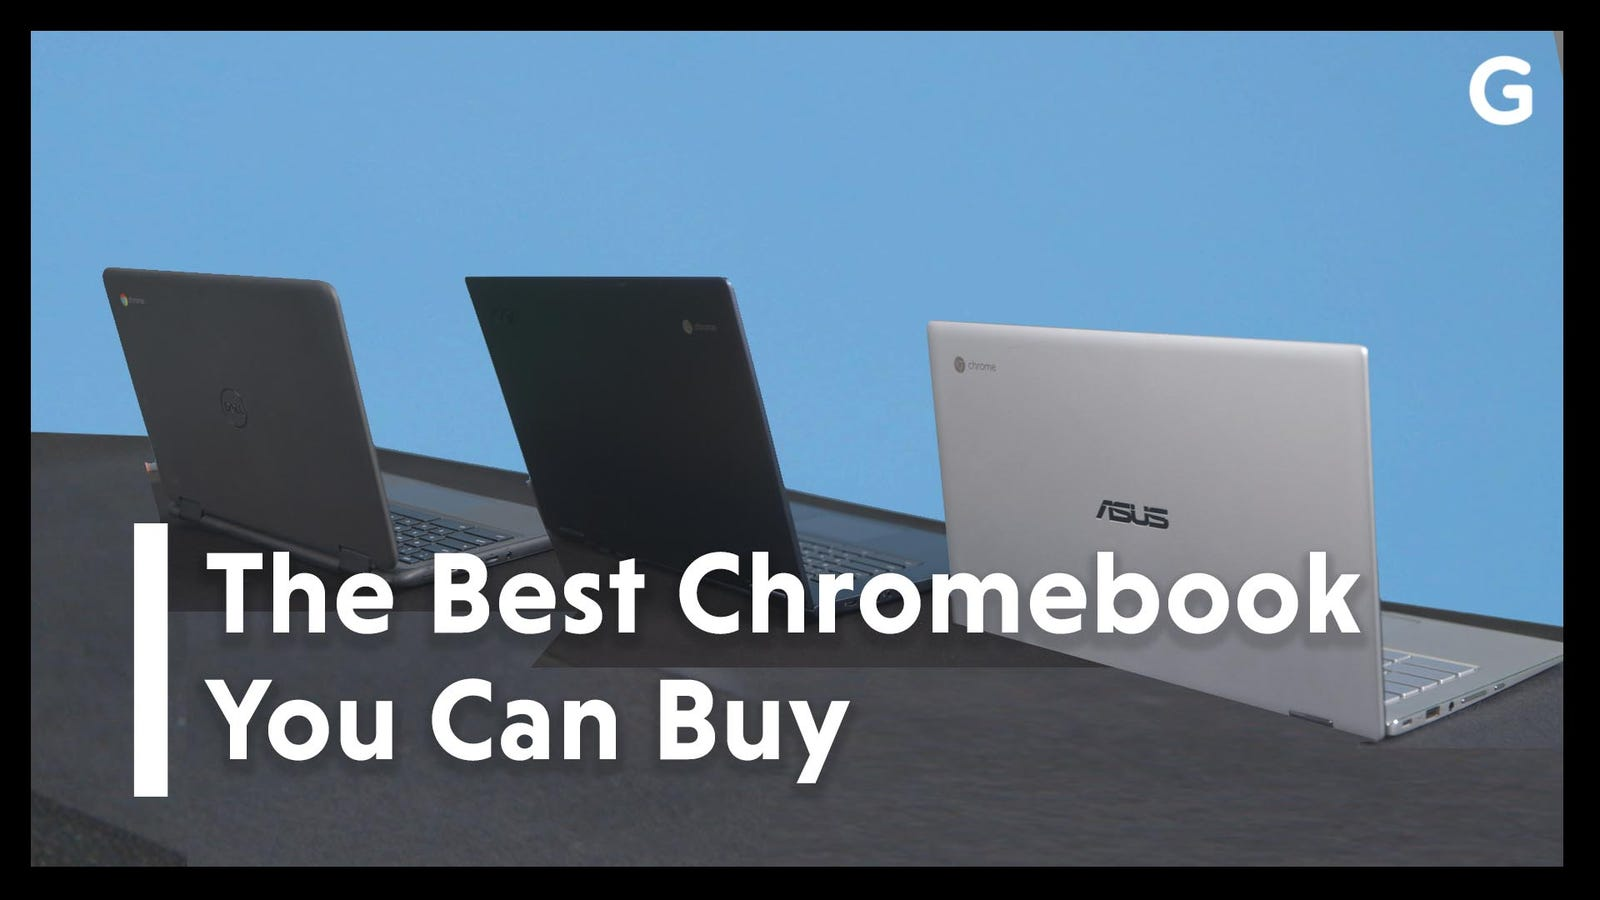 The Best Chromebook in 2019